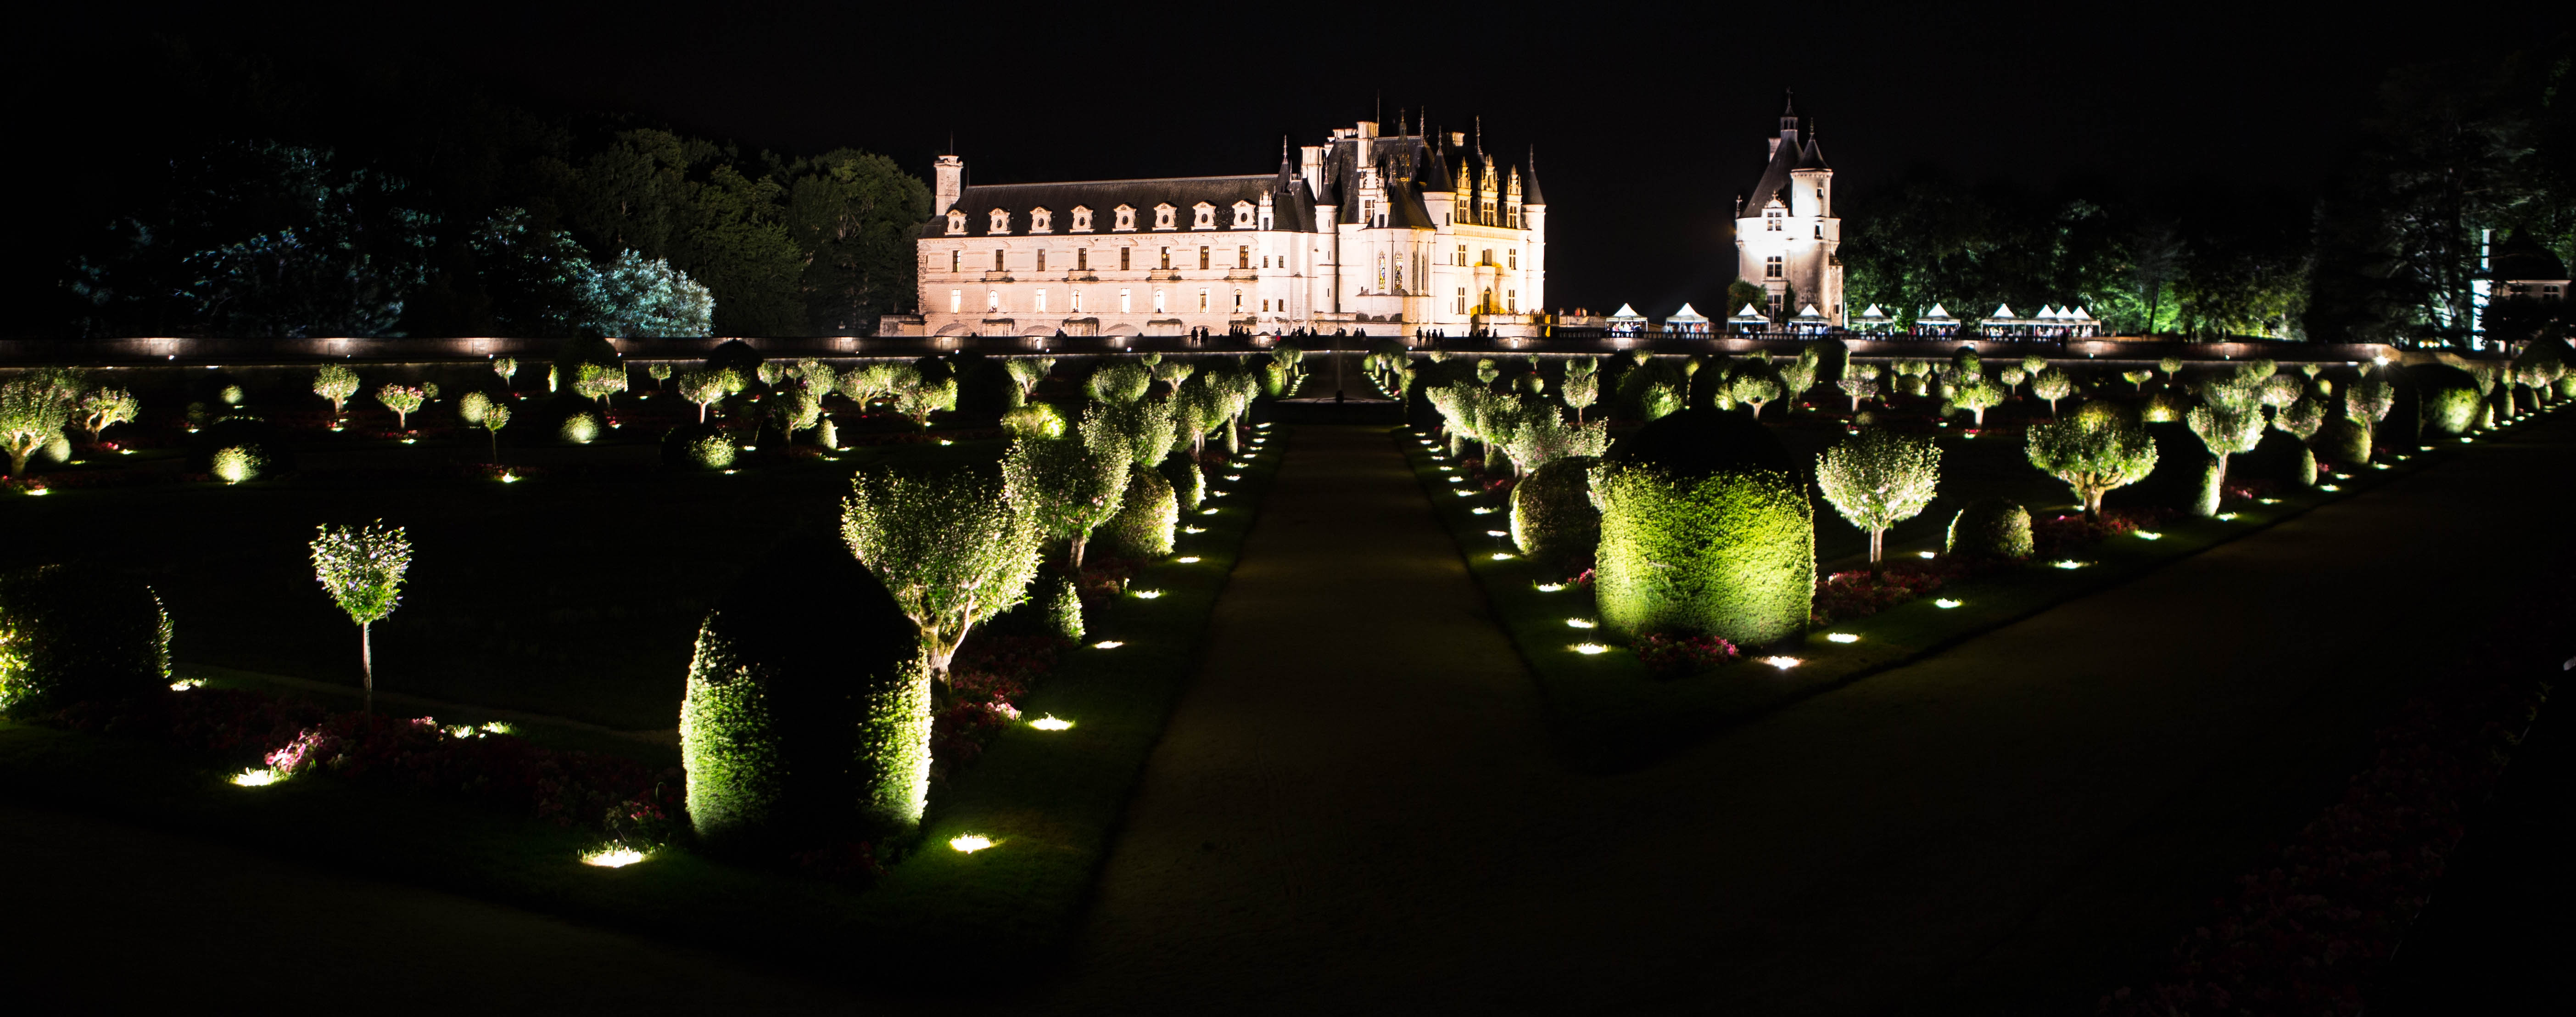 Chenonceau château and gardens © Philippe Lucchese